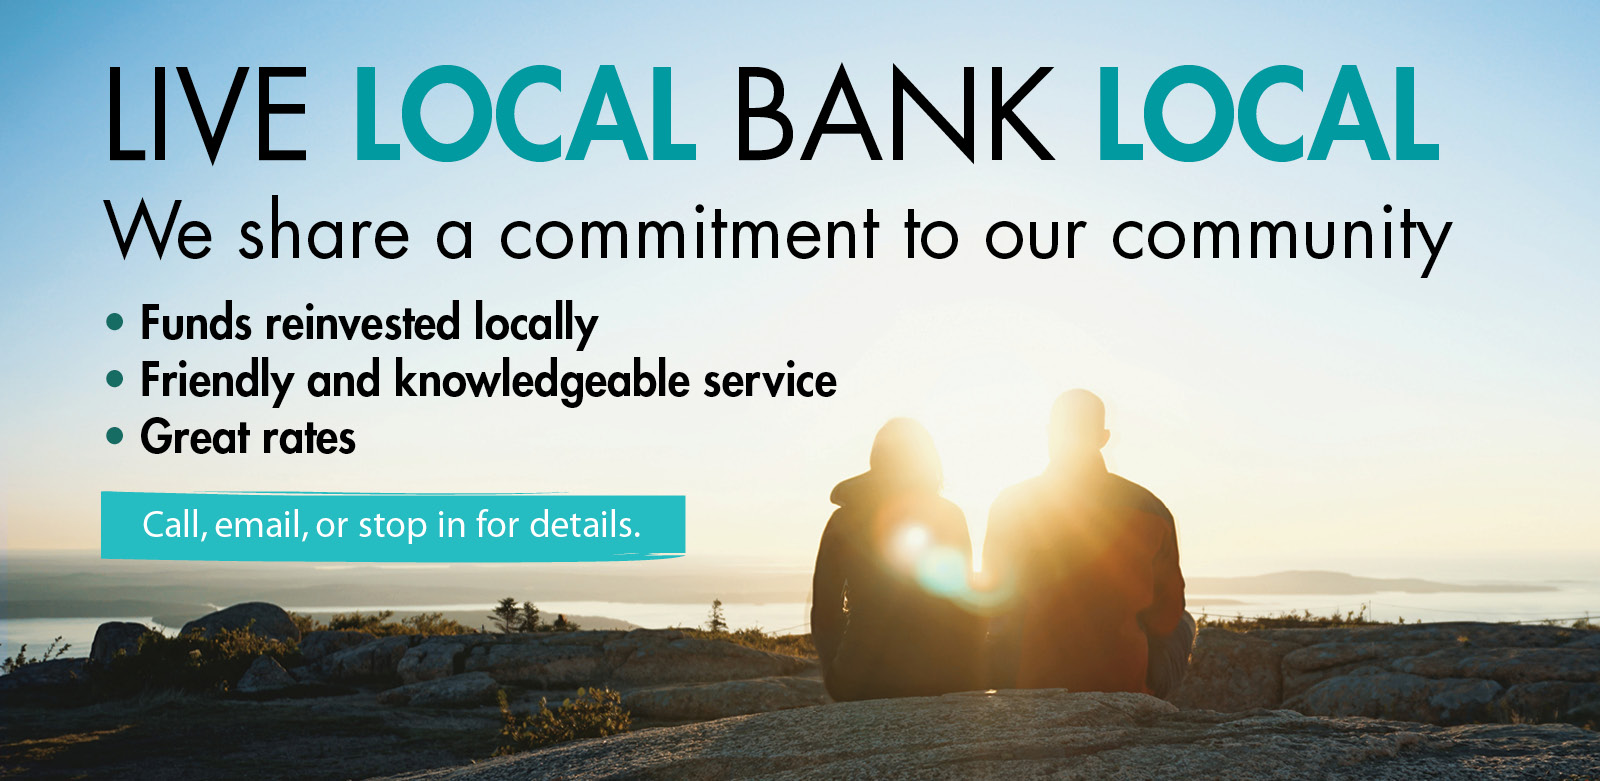 live local bank local